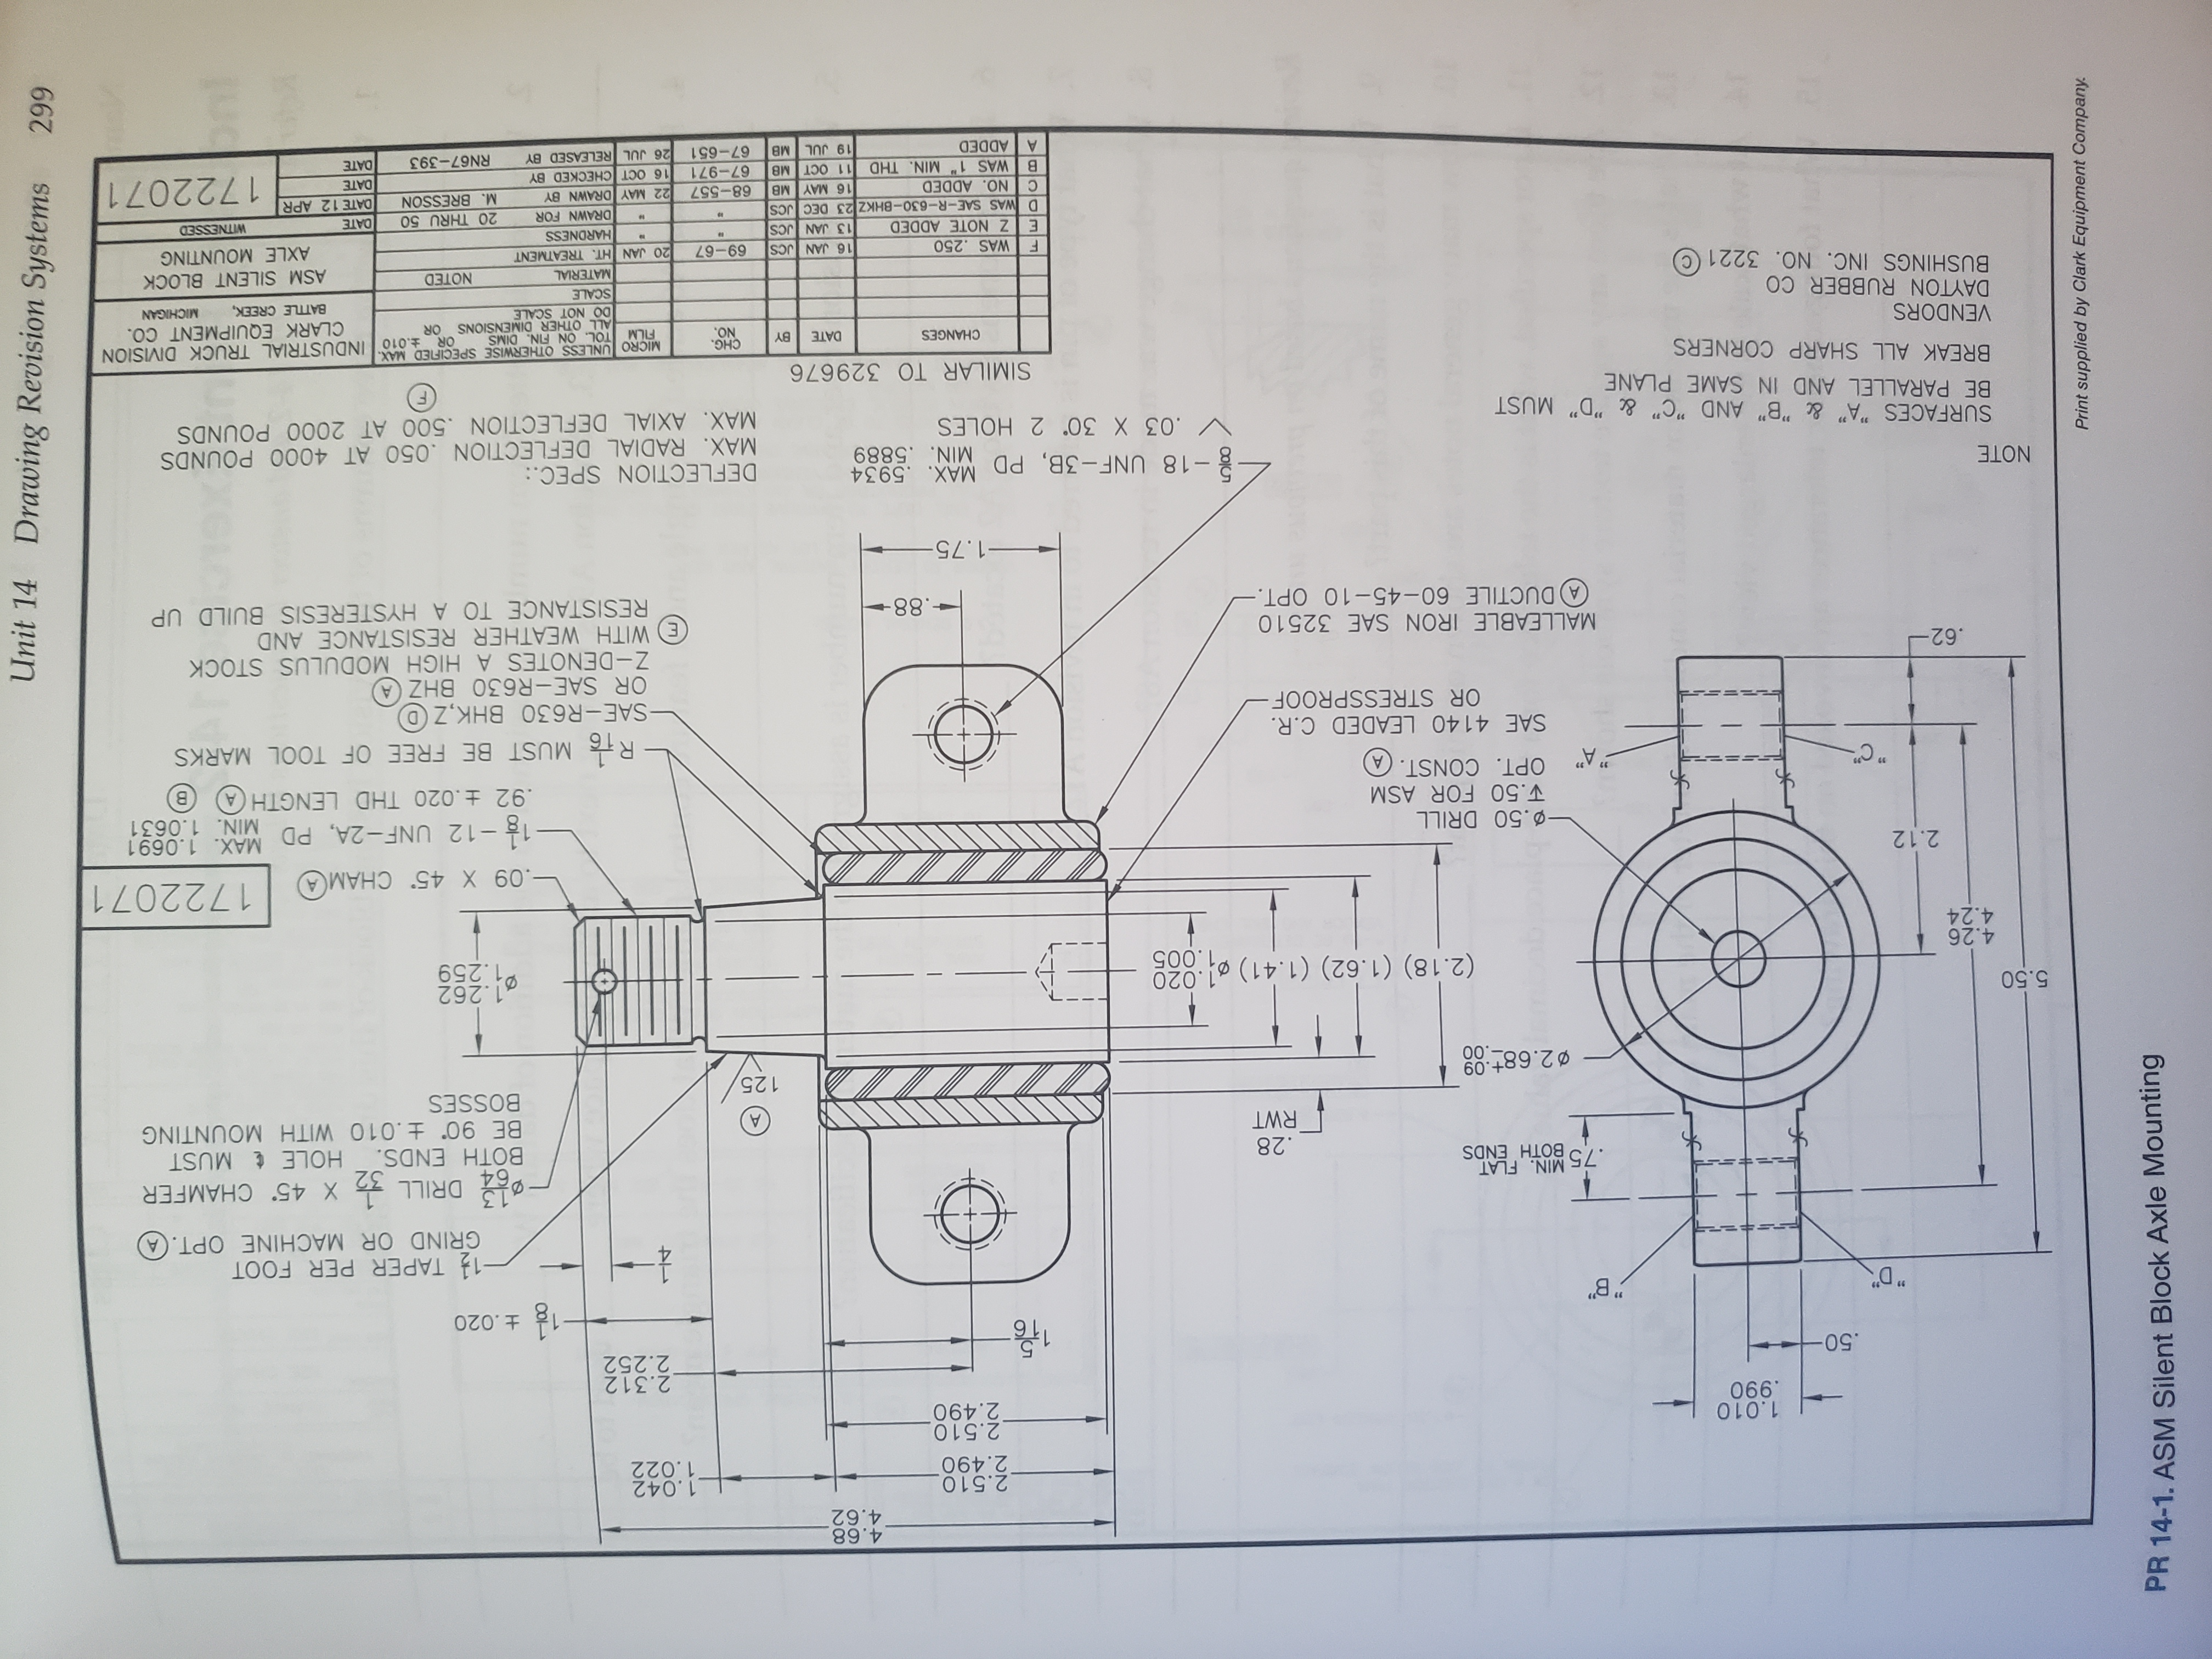 """Unit 14 Drawing Revision Systems 299 100 114 Print supplied by Clark Equipment Company PR 14-1. ASM Silent Block Axle Mounting 4.68 4.62 2.510 2.490 2.510 2.490 1.042 1.022 1.010 066 2.312 2.252 0 ±.020 """"D"""" """"B"""" -12 TAPER PER FOOT GRIND OR MACHINE OPT.(A 13 64 DRILL X 45' CHAMFER BOTH ENDS BE 90 t.010 WITH MOUNTING BOSSES MIN. FLAT .75 BOTH ENDS .28 RWT HOLE MUST 125 2.68+.09 000 5.50 (2.18) (1.62) (1.41) .005 1.020 1.262 1.259 4.26 4.24 1722071 -.09 X 45 CHAMA 2.12 -ø.50 DRILL V.50 FOR ASM OPT. CONST. 1-12 UNF-2A, PD MAX. 1.0691 .92 t.020 THD LENGTH (A MIN. 1.0631 """"C"""" """"A"""" MUST BE FREE OF TOOL MARKS SAE 4140 LEAD ED C.R. OR STRESSPROOF -SAE-R630 BHK,Z D OR SAE-R630 BHZ A Z-DENOTESA HIGH MODULUS STOCK E WITH WEATHER RESISTANCE AND RESISTANCE TO A HYSTERESIS BUILD UP .62 MALLEABLE IRON SAE 32510 A DUCTILE 60-45-10 OPT. +.88 1.75- -18 UNF-3B, PD MAX. .5934 V.03 X 30 2 HOLES NOTE SURFACES """"A"""" & """"B"""" AND """"C"""" & """"D"""" MUST BE PARALLEL AND IN SAME PLANE DEFLECTION SPEC.: MAX. RADIAL DEFLECTION .050 AT 4000 POUNDS MAX. AXIAL DEFLECTION 500 AT 2000 POUNDS BREAK ALL SHARP CORNERS SIMILAR TO 329676 MICRO UNLESS OTHERWISE SPECIFIED MAX. INDUSTRIAL TRUCK DIVISION OR .010 CHANGES CHG. VENDORS DAYTON RUBBER CO BUSHINGS INC. NO. 3221 C DATE BY TOL. ON FIN. DIMS ALL OTHER DIMENSIONS OR DO NOT SCALE SCALE MATERIAL FILM ON CLARK EQUIPMENT CO. BATTLE CREEK, MICHIGAN NOTED ASM SILENT BLOCK 20 JAN HT. TREATMENT WAS .250 Z NOTE ADDED D WAS SAE-R-630-BHKZ 23 DEC JCS CNO. ADDED WAS 1 MIN. THD A ADDED 16 JAN JCS AXLE MOUNTING HARDNESS DRAWN FOR 13 JAN JCS ea 68-557 67-971 67-651 22 MAY DRAWN BY 16 OCT CHECKED BY 26 JUL RELEASED BY 20 THRU 50 M. BRESSON DATE DATE 12 APR DATE DATE 16 MAY MB 1722071 11 OCT MB MB RN67-393"""